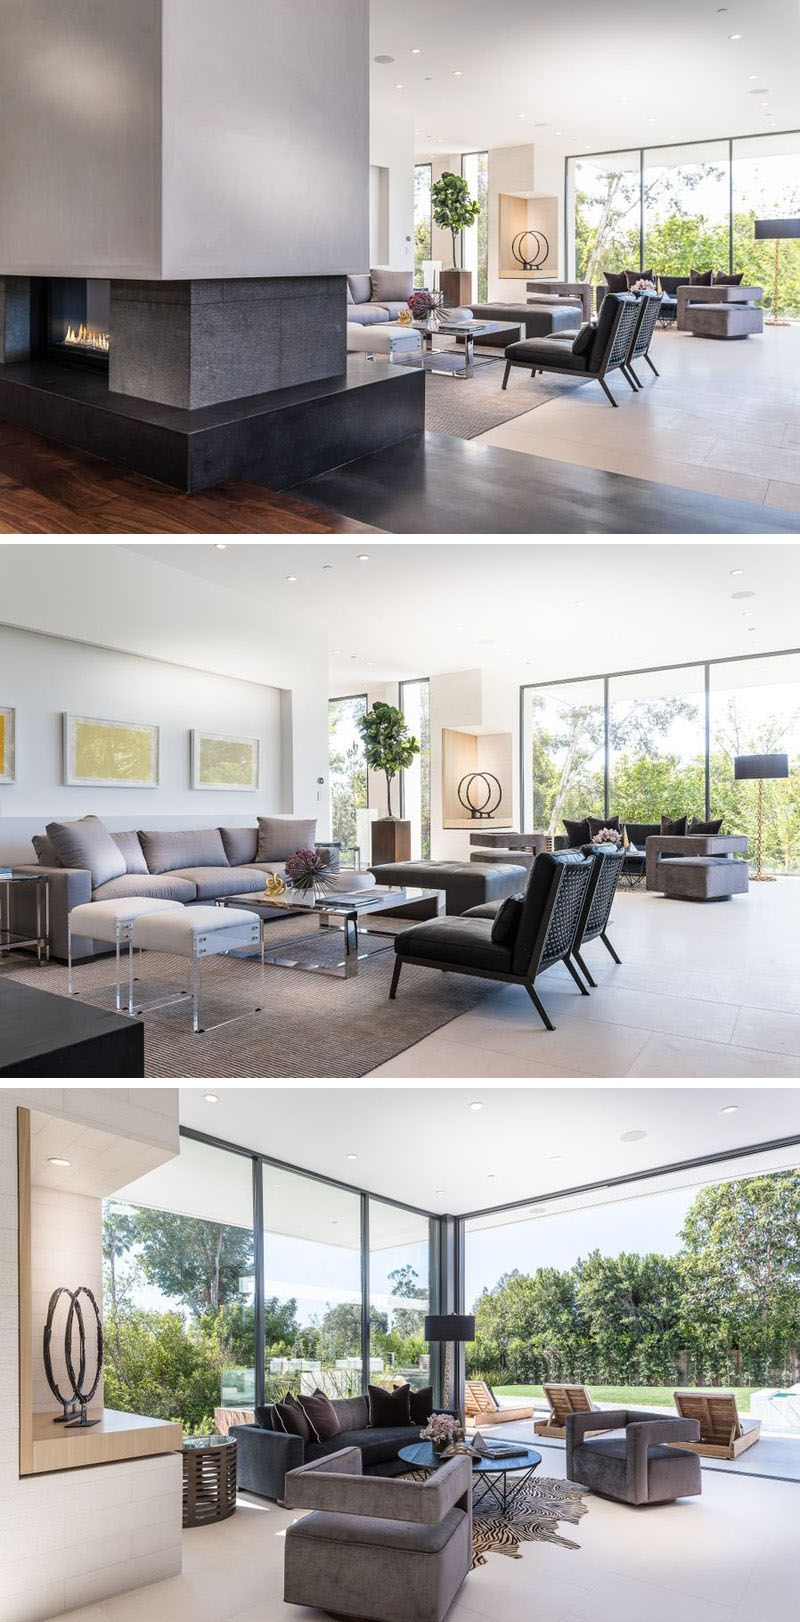 Home interior design outside this large sitting area has two different spaces to relax in as